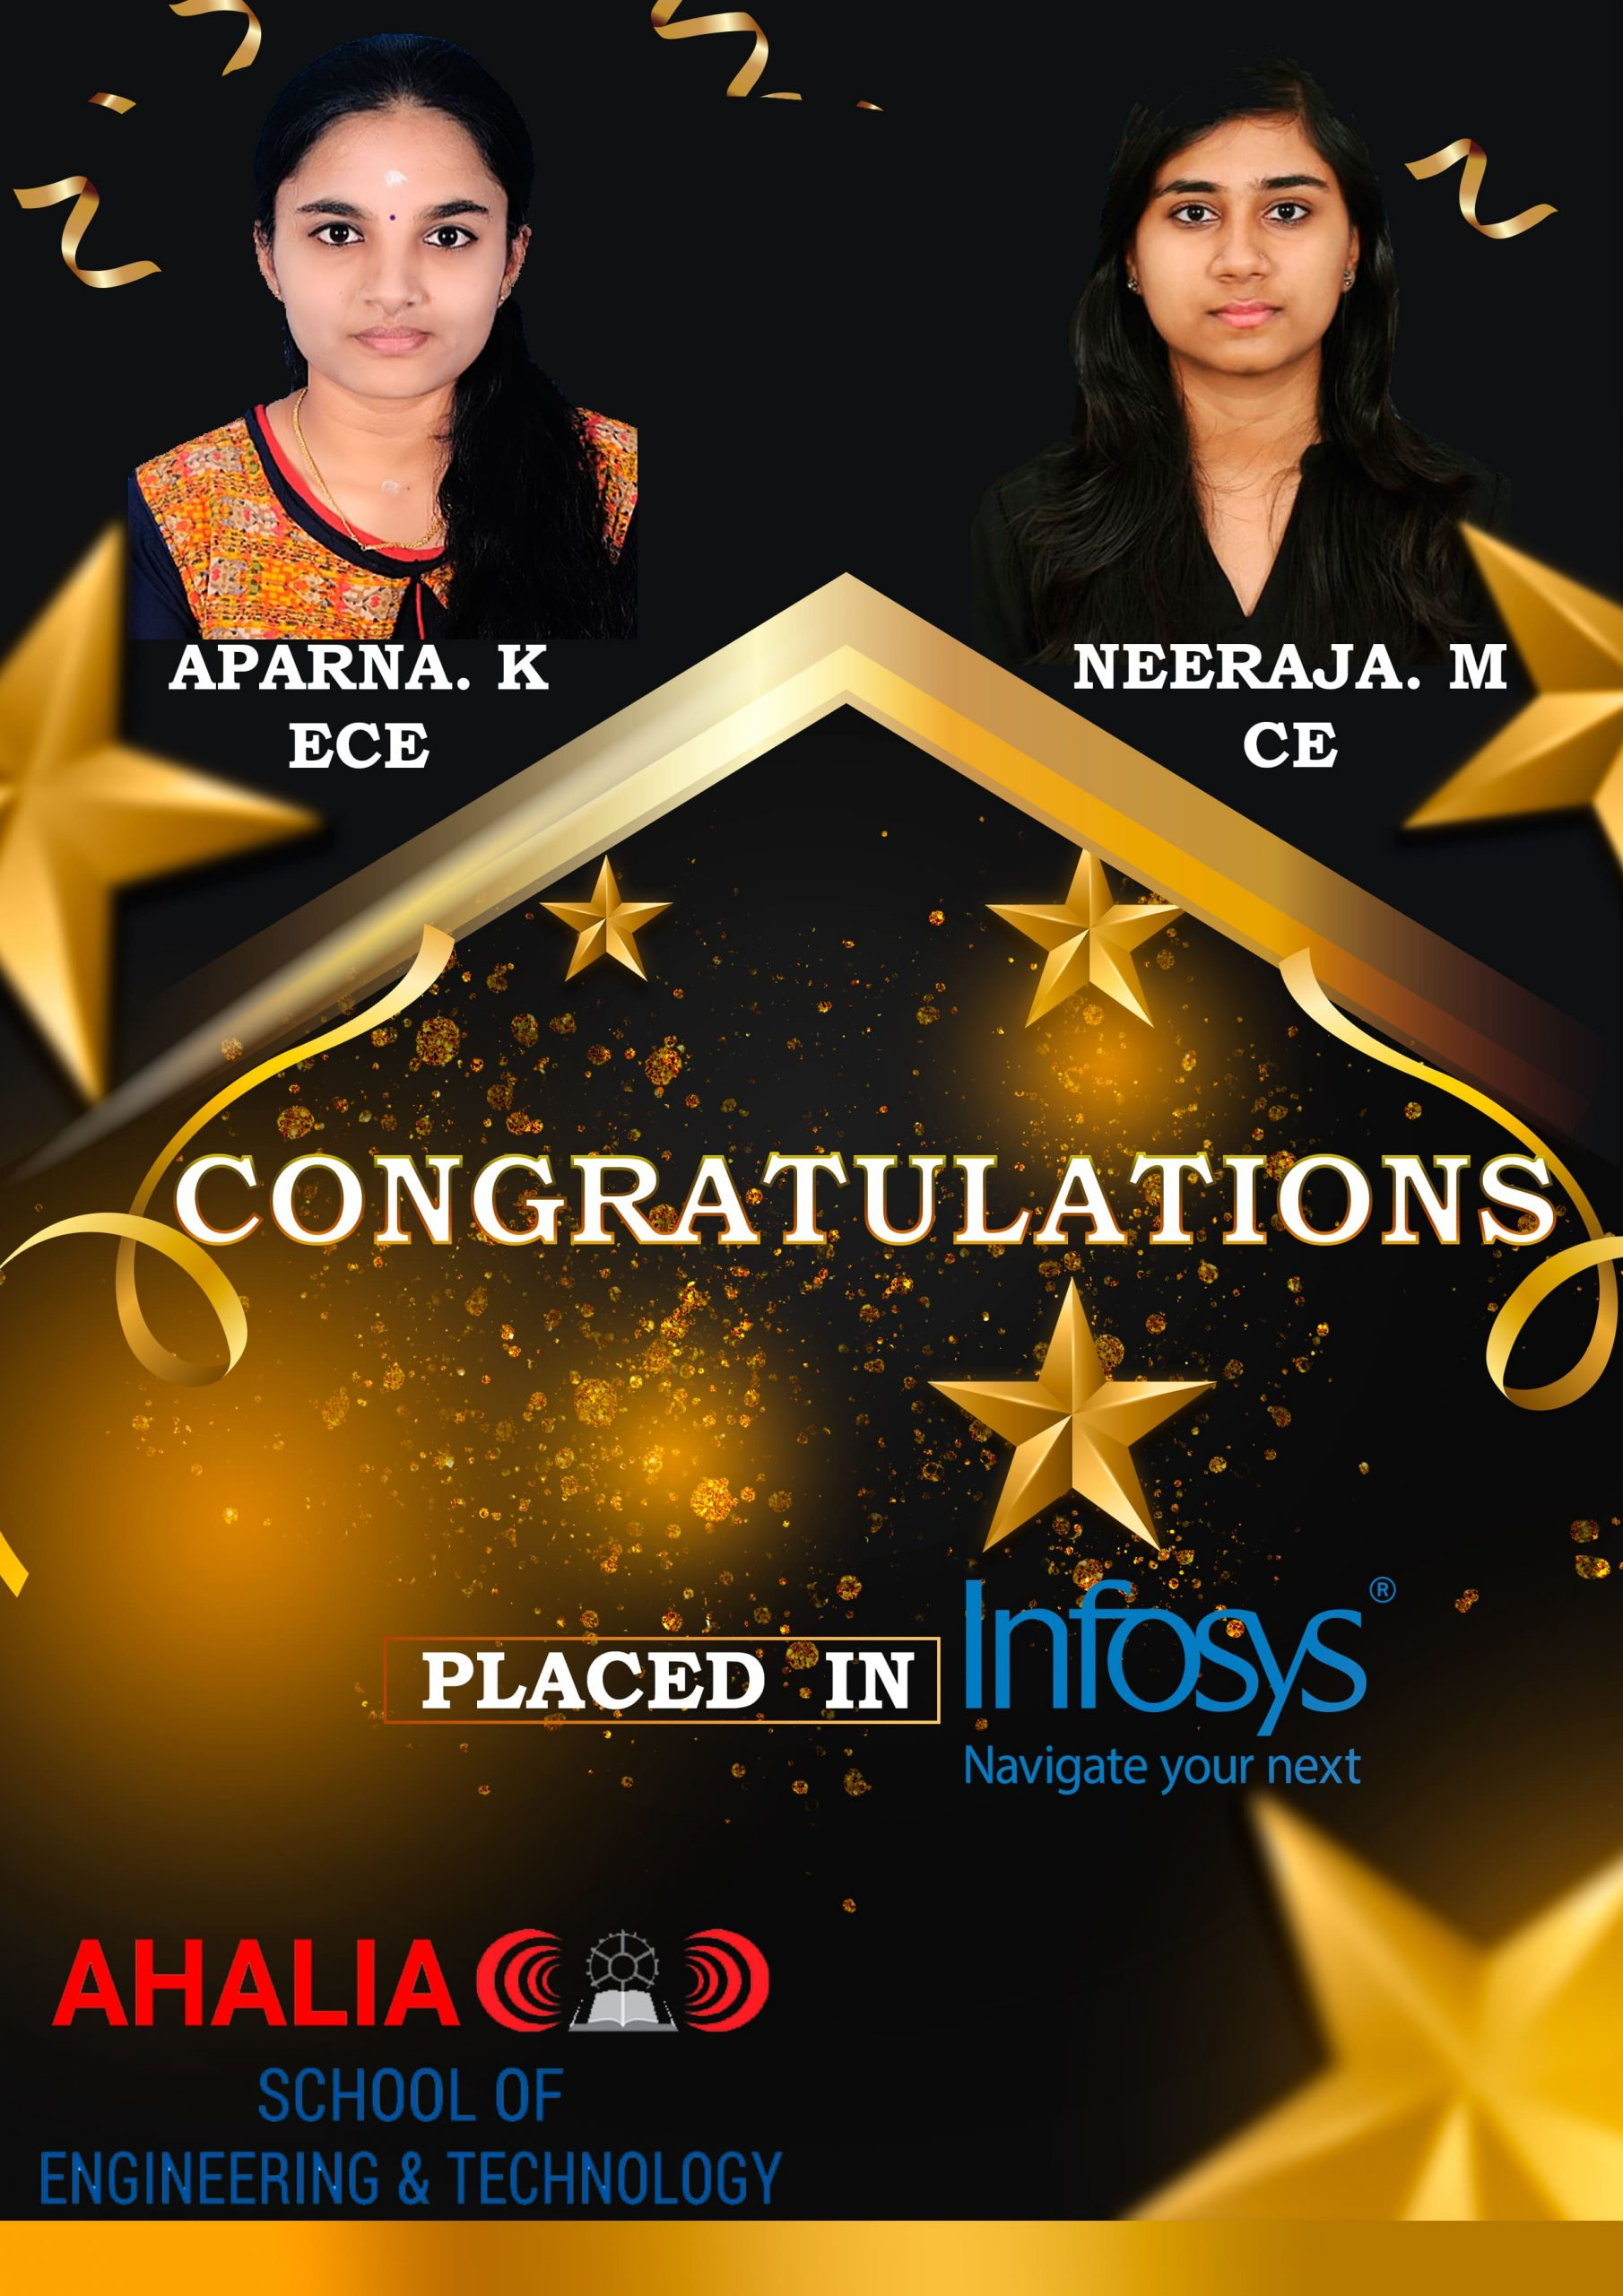 Aparna K. and Neeraja M. Placed in Infosys